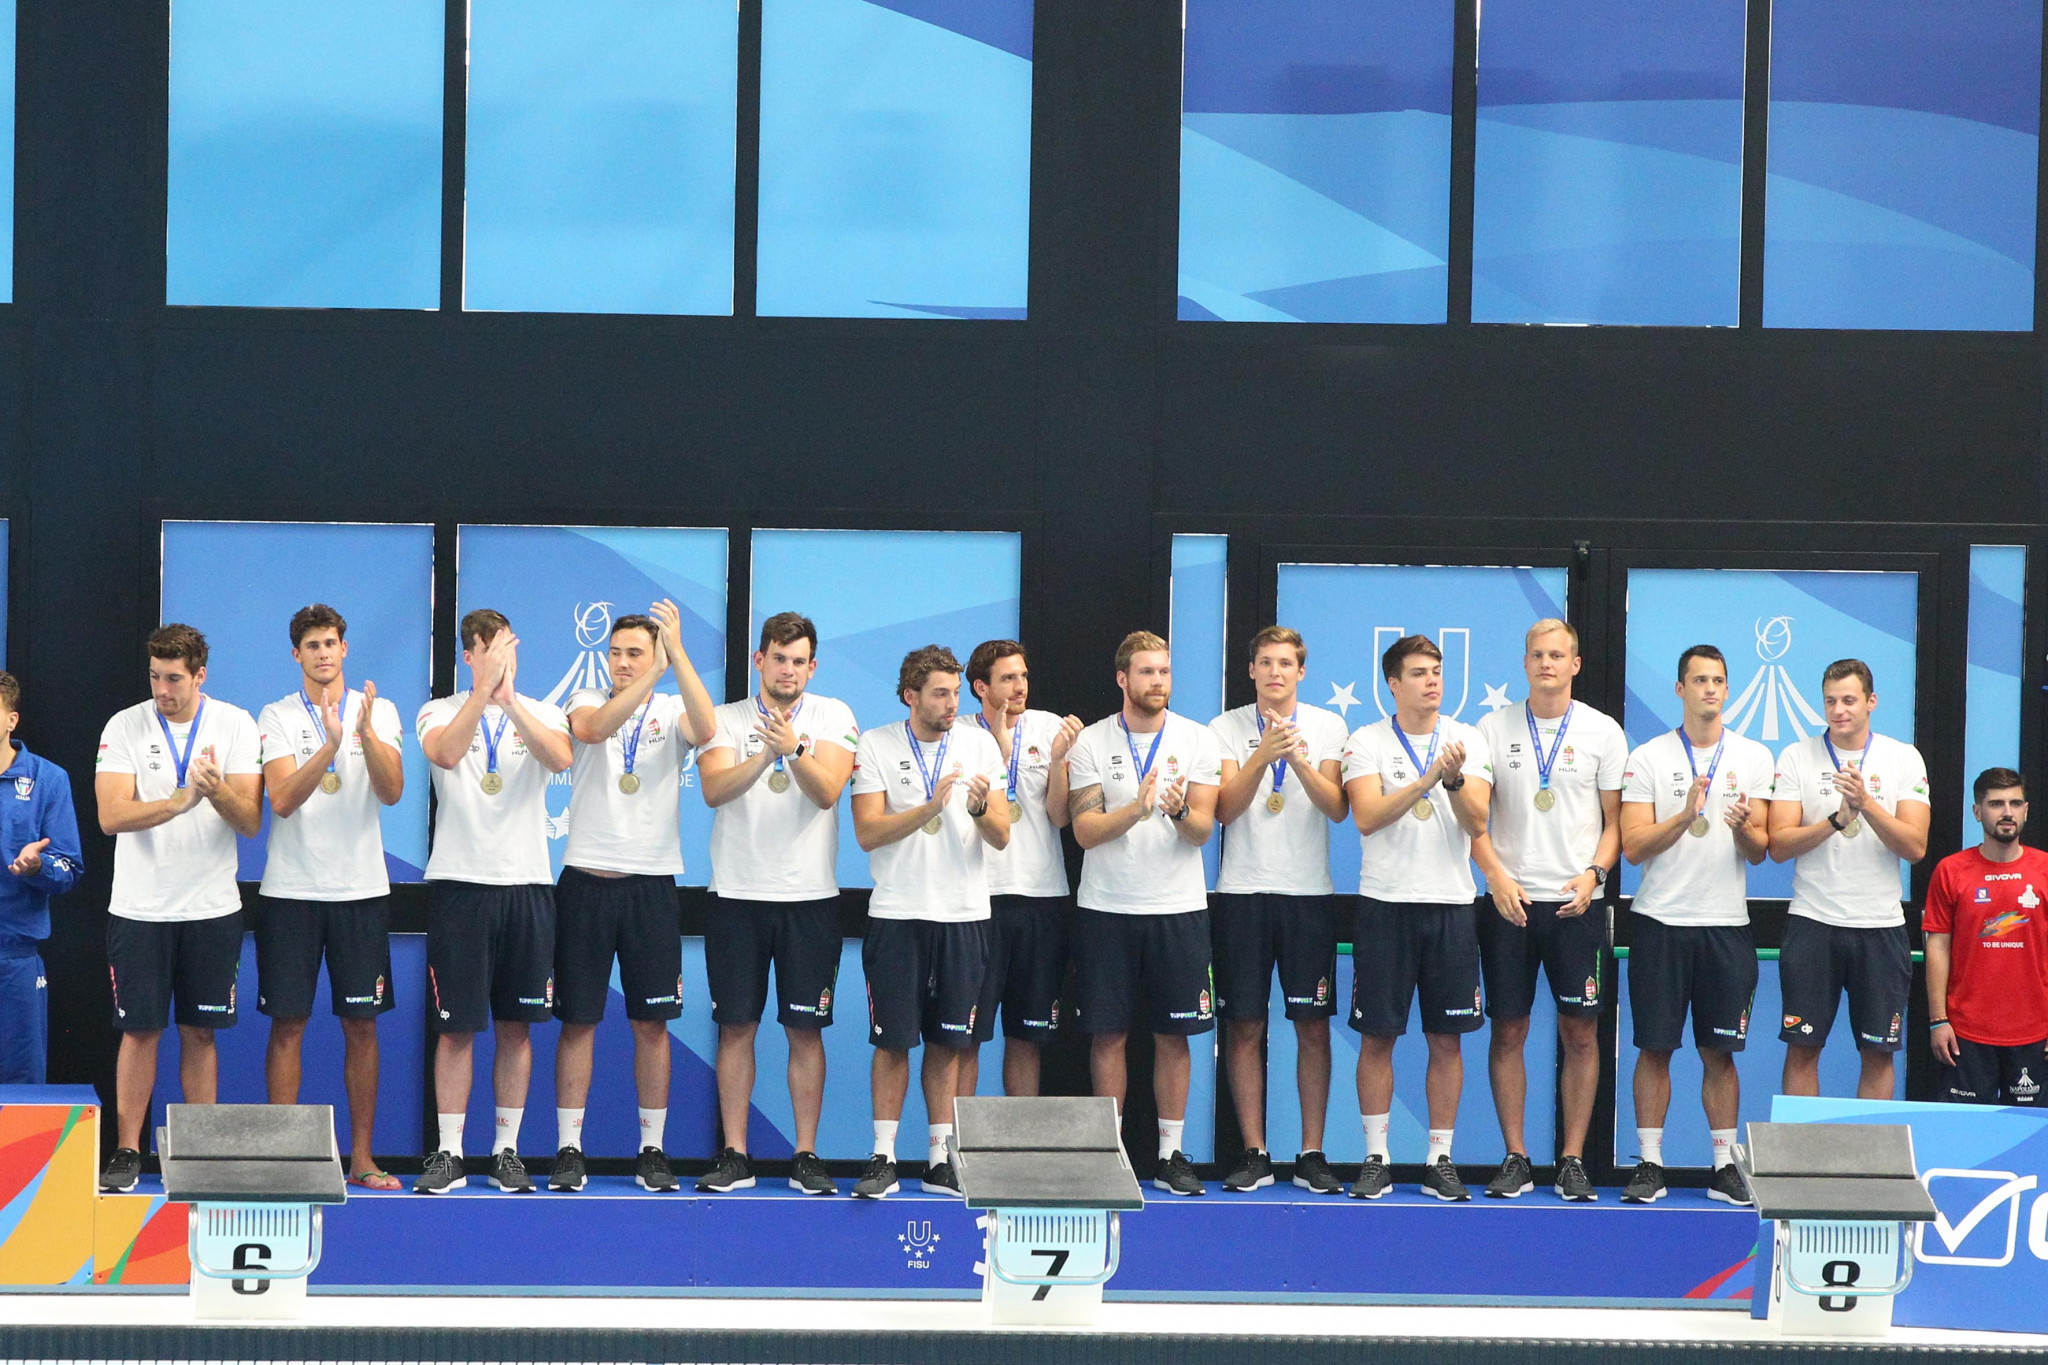 Hungary finished with bronze after a shootout victory against Russia ©Naples 2019